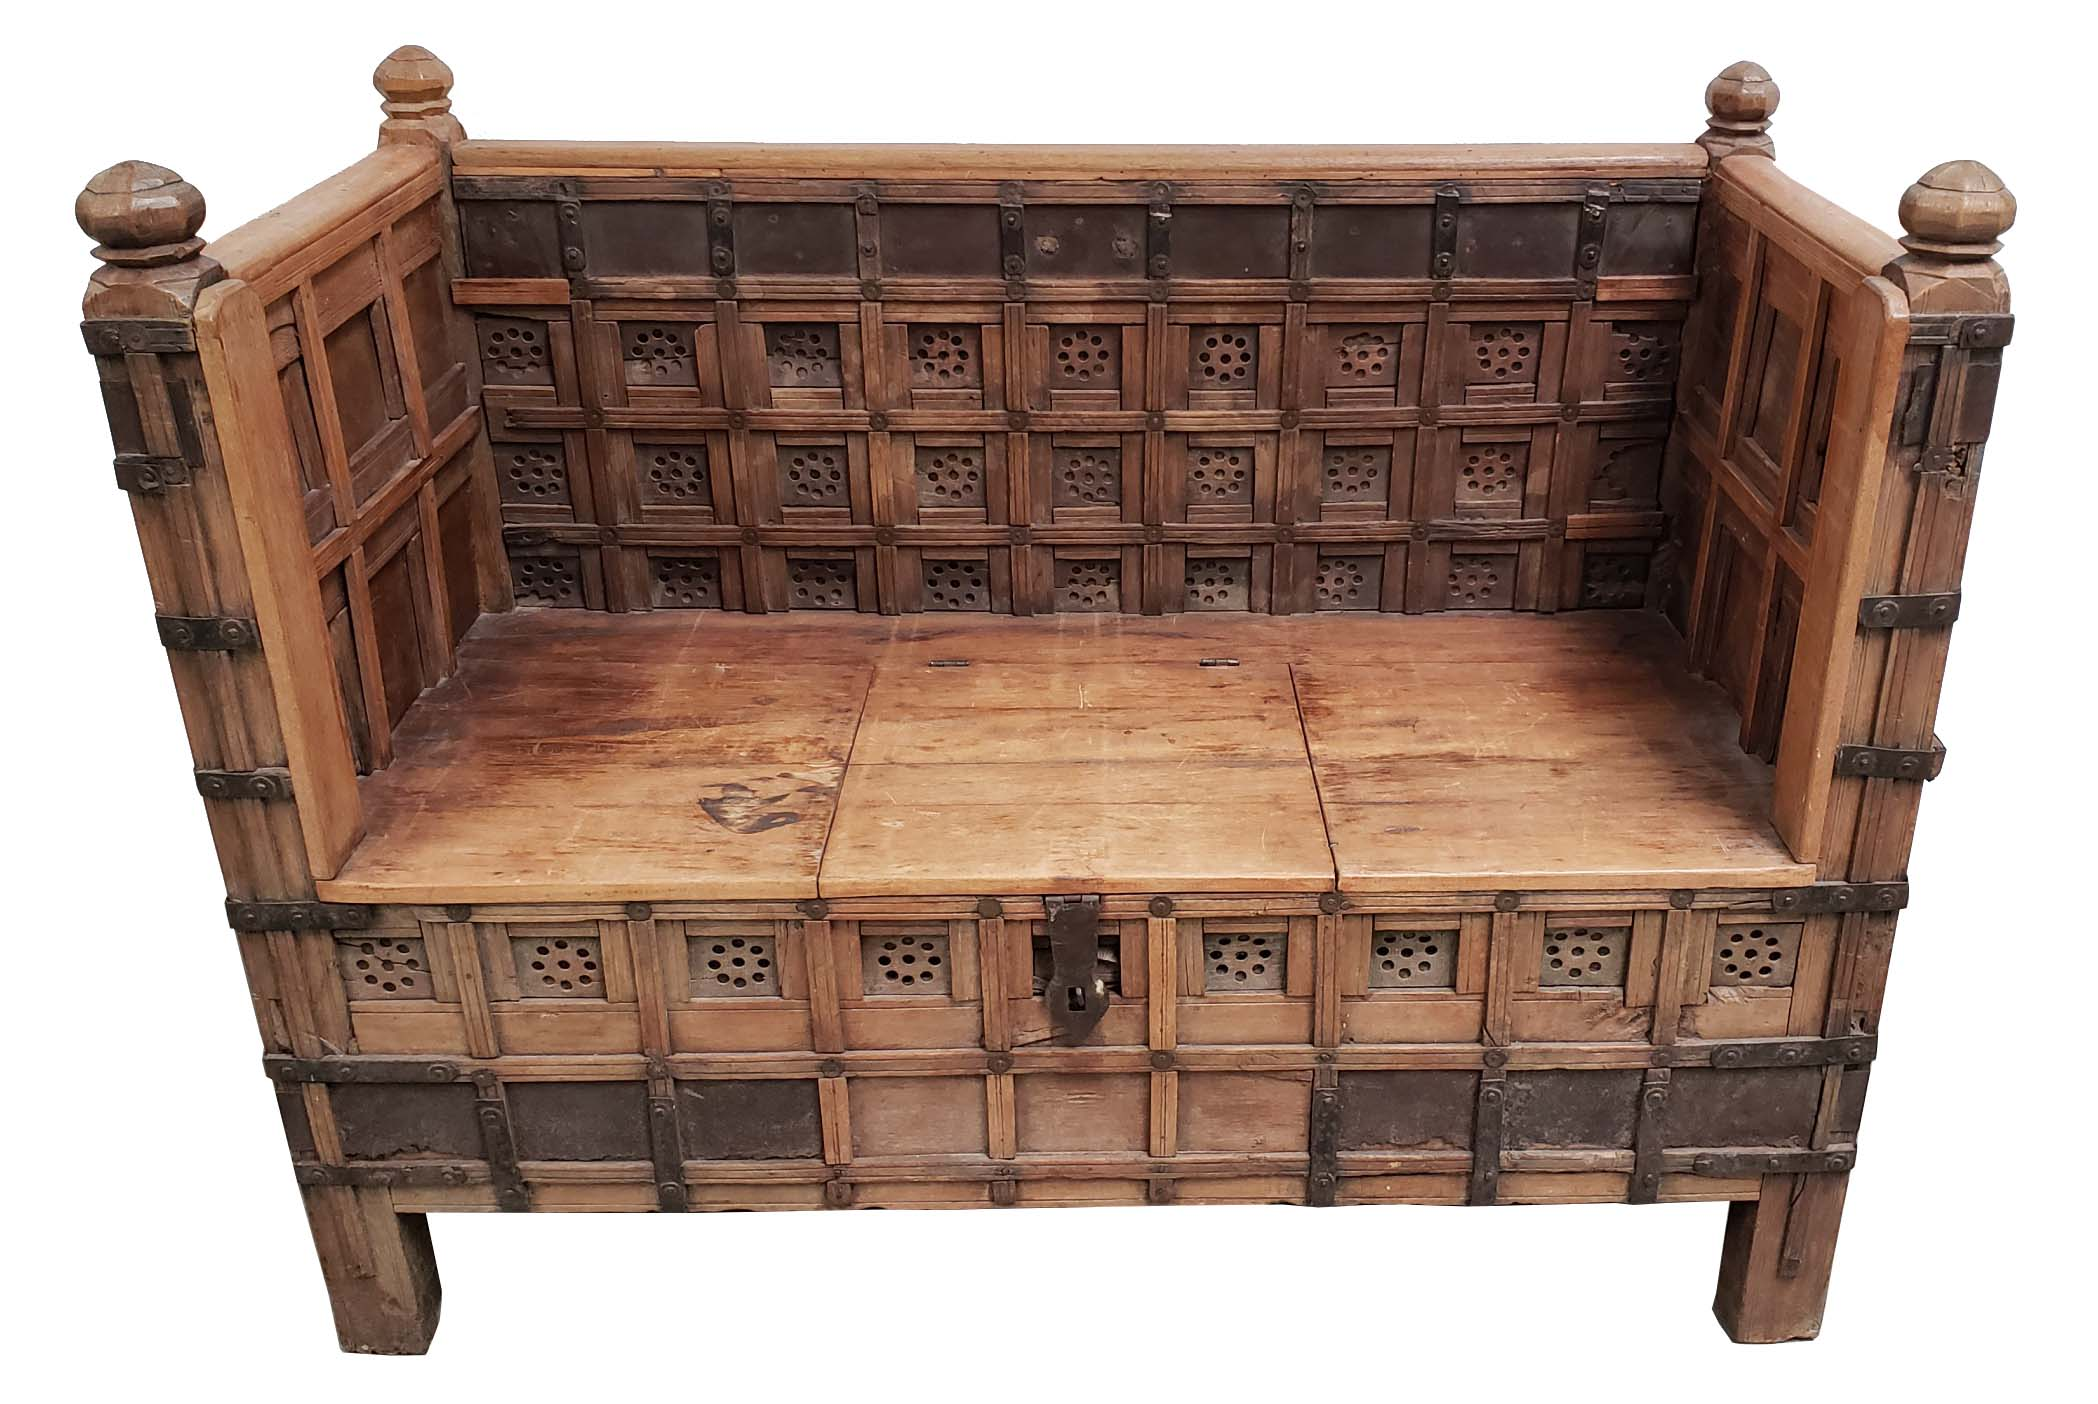 moroccan-hand-carved-vintage-wooden-bench-cw-b017-1.jpg